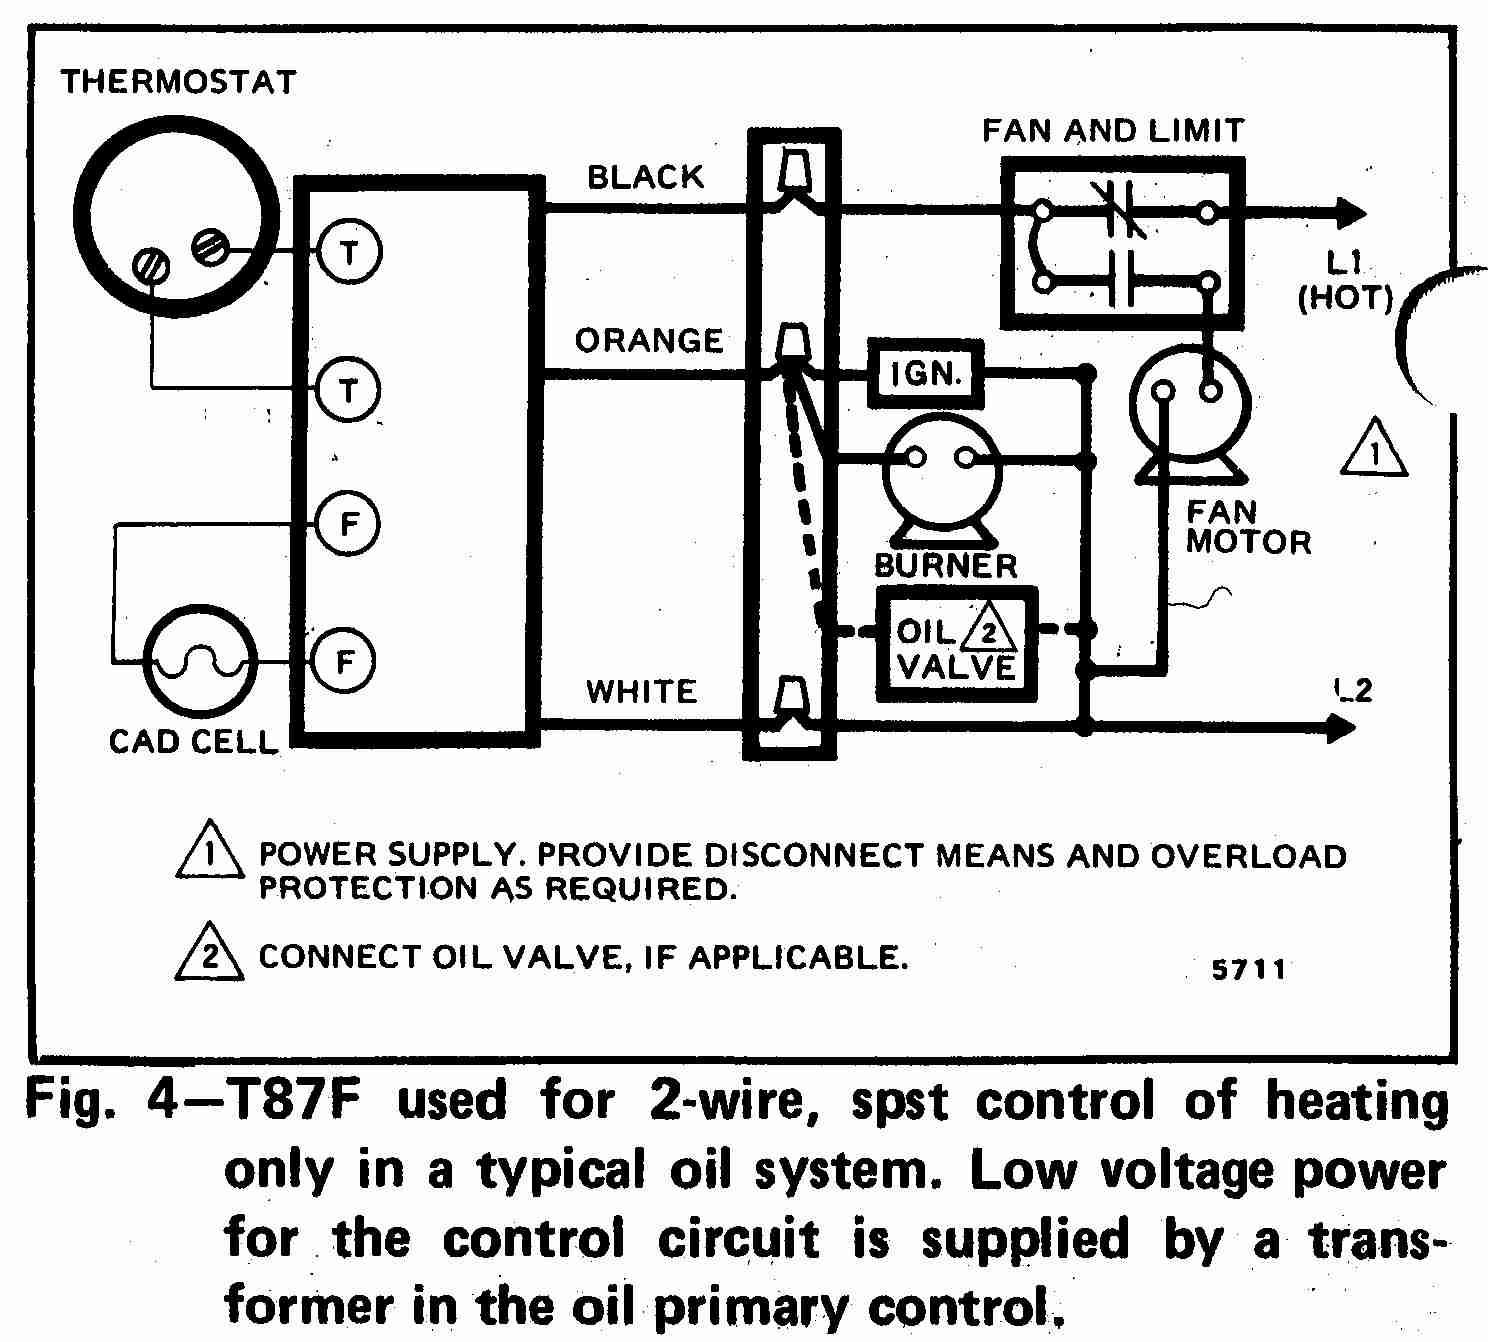 hight resolution of room thermostat wiring diagrams for hvac systems pressure washer wiring schematic thermostat honeywell t87f thermostat wiring